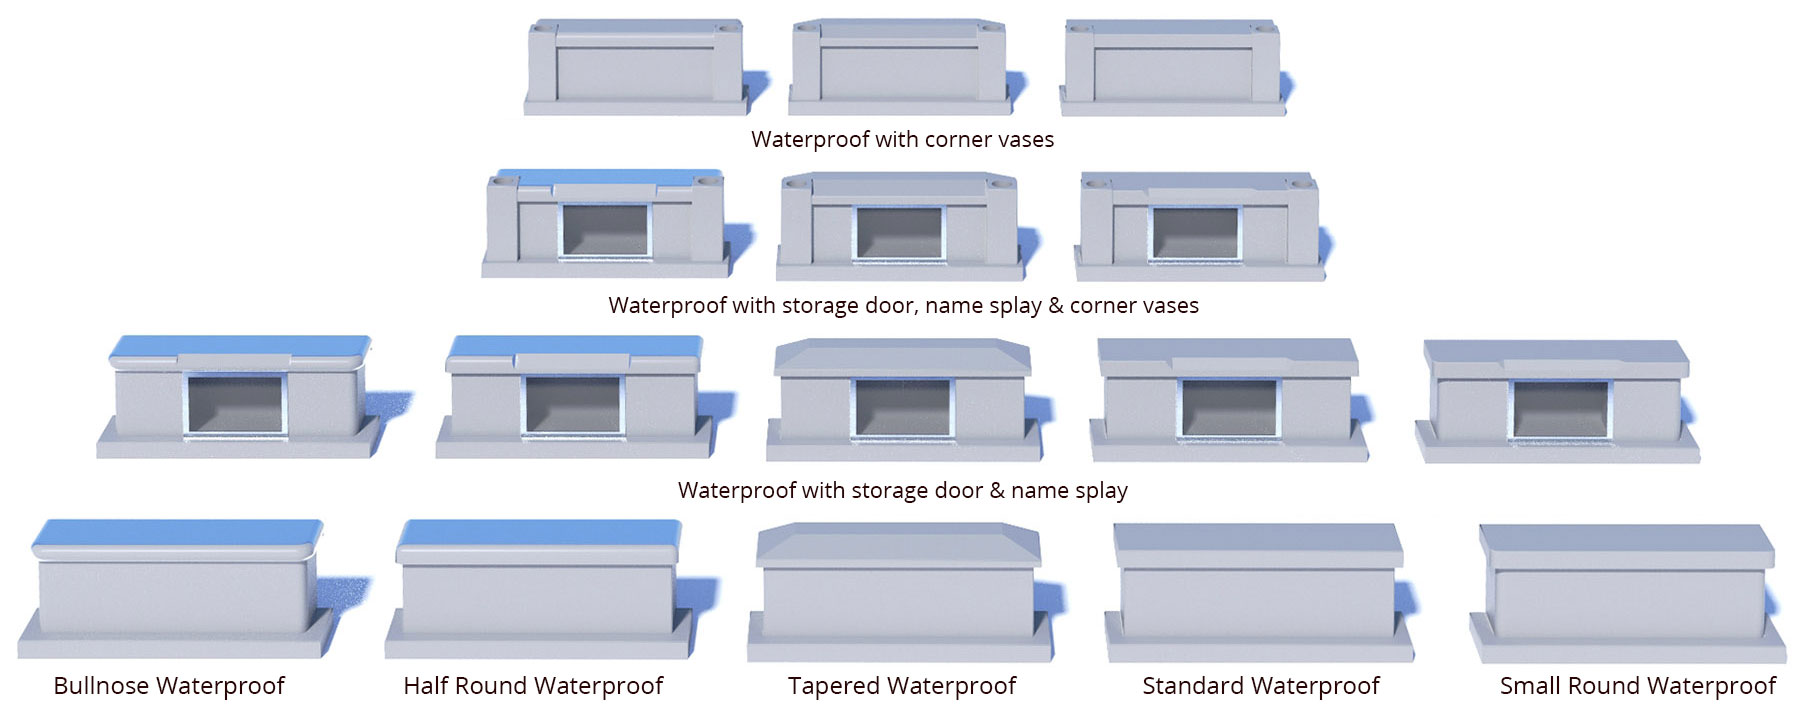 Waterprrof Front Stone Options